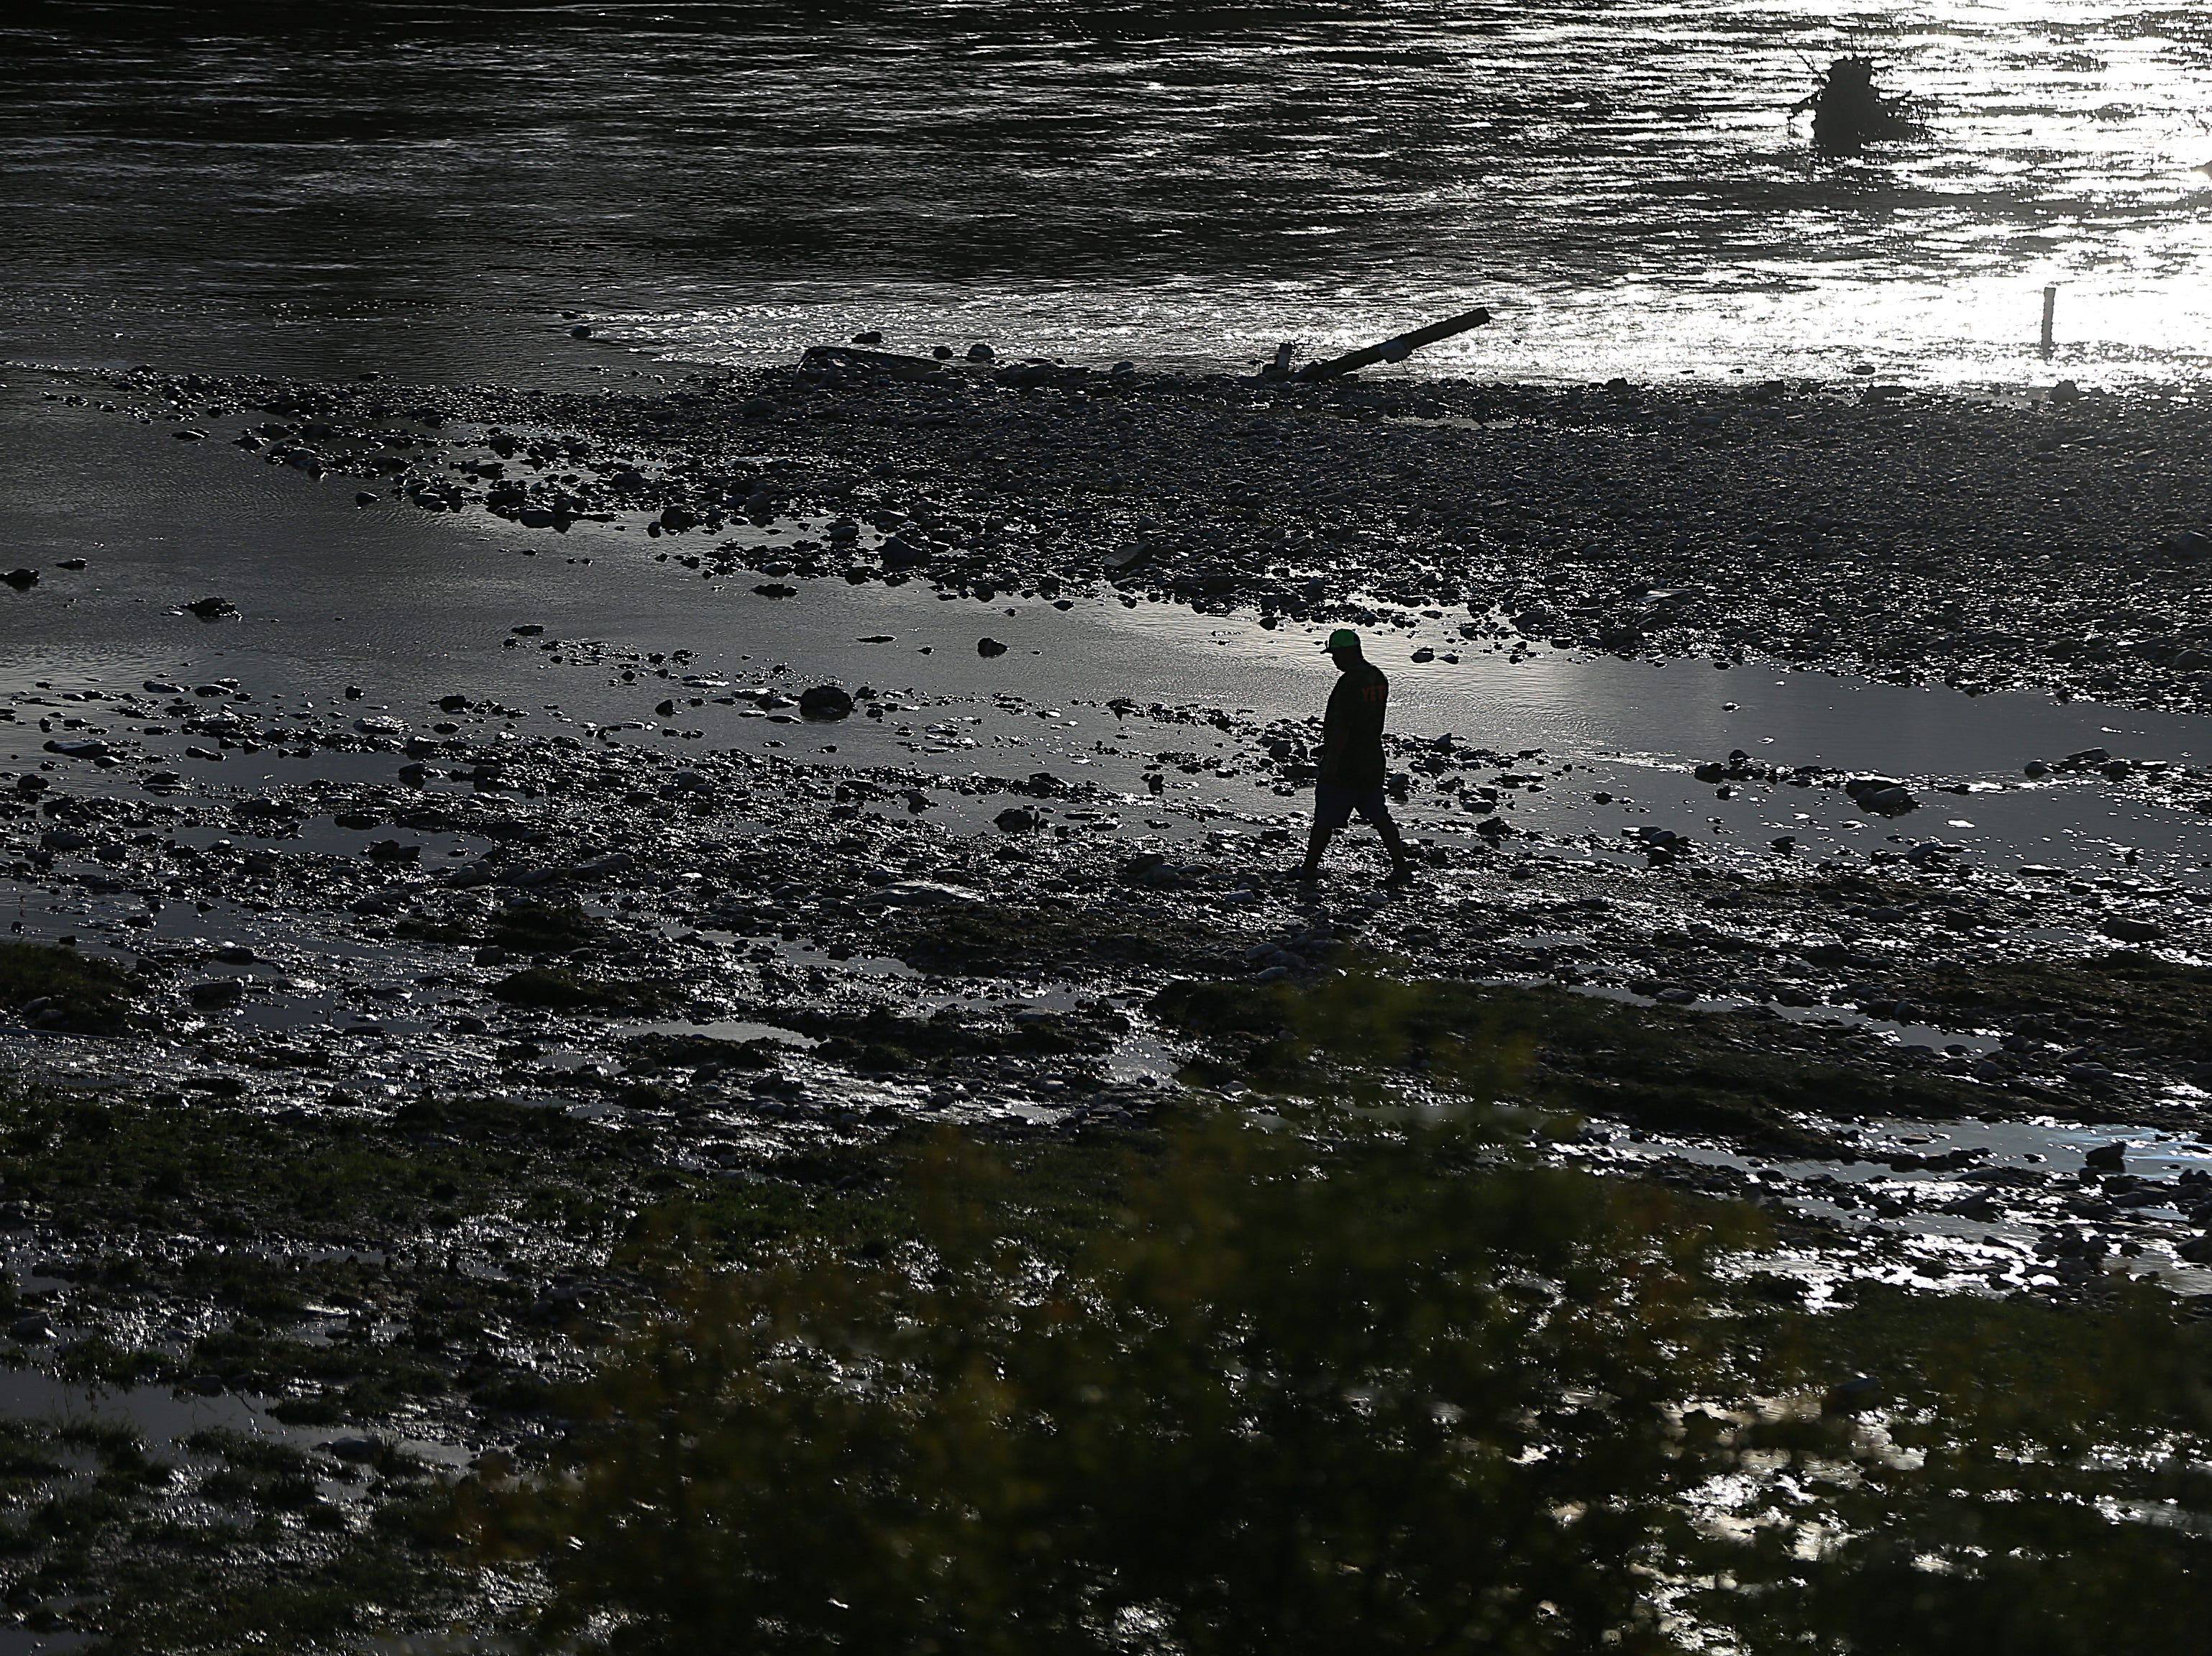 A man walks in the riverbed of the South Llano River after flood waters subside Monday, Oct. 8, 2018 in Junction, Texas. Heavy rainfall caused flooding and washed away a nearby RV park.